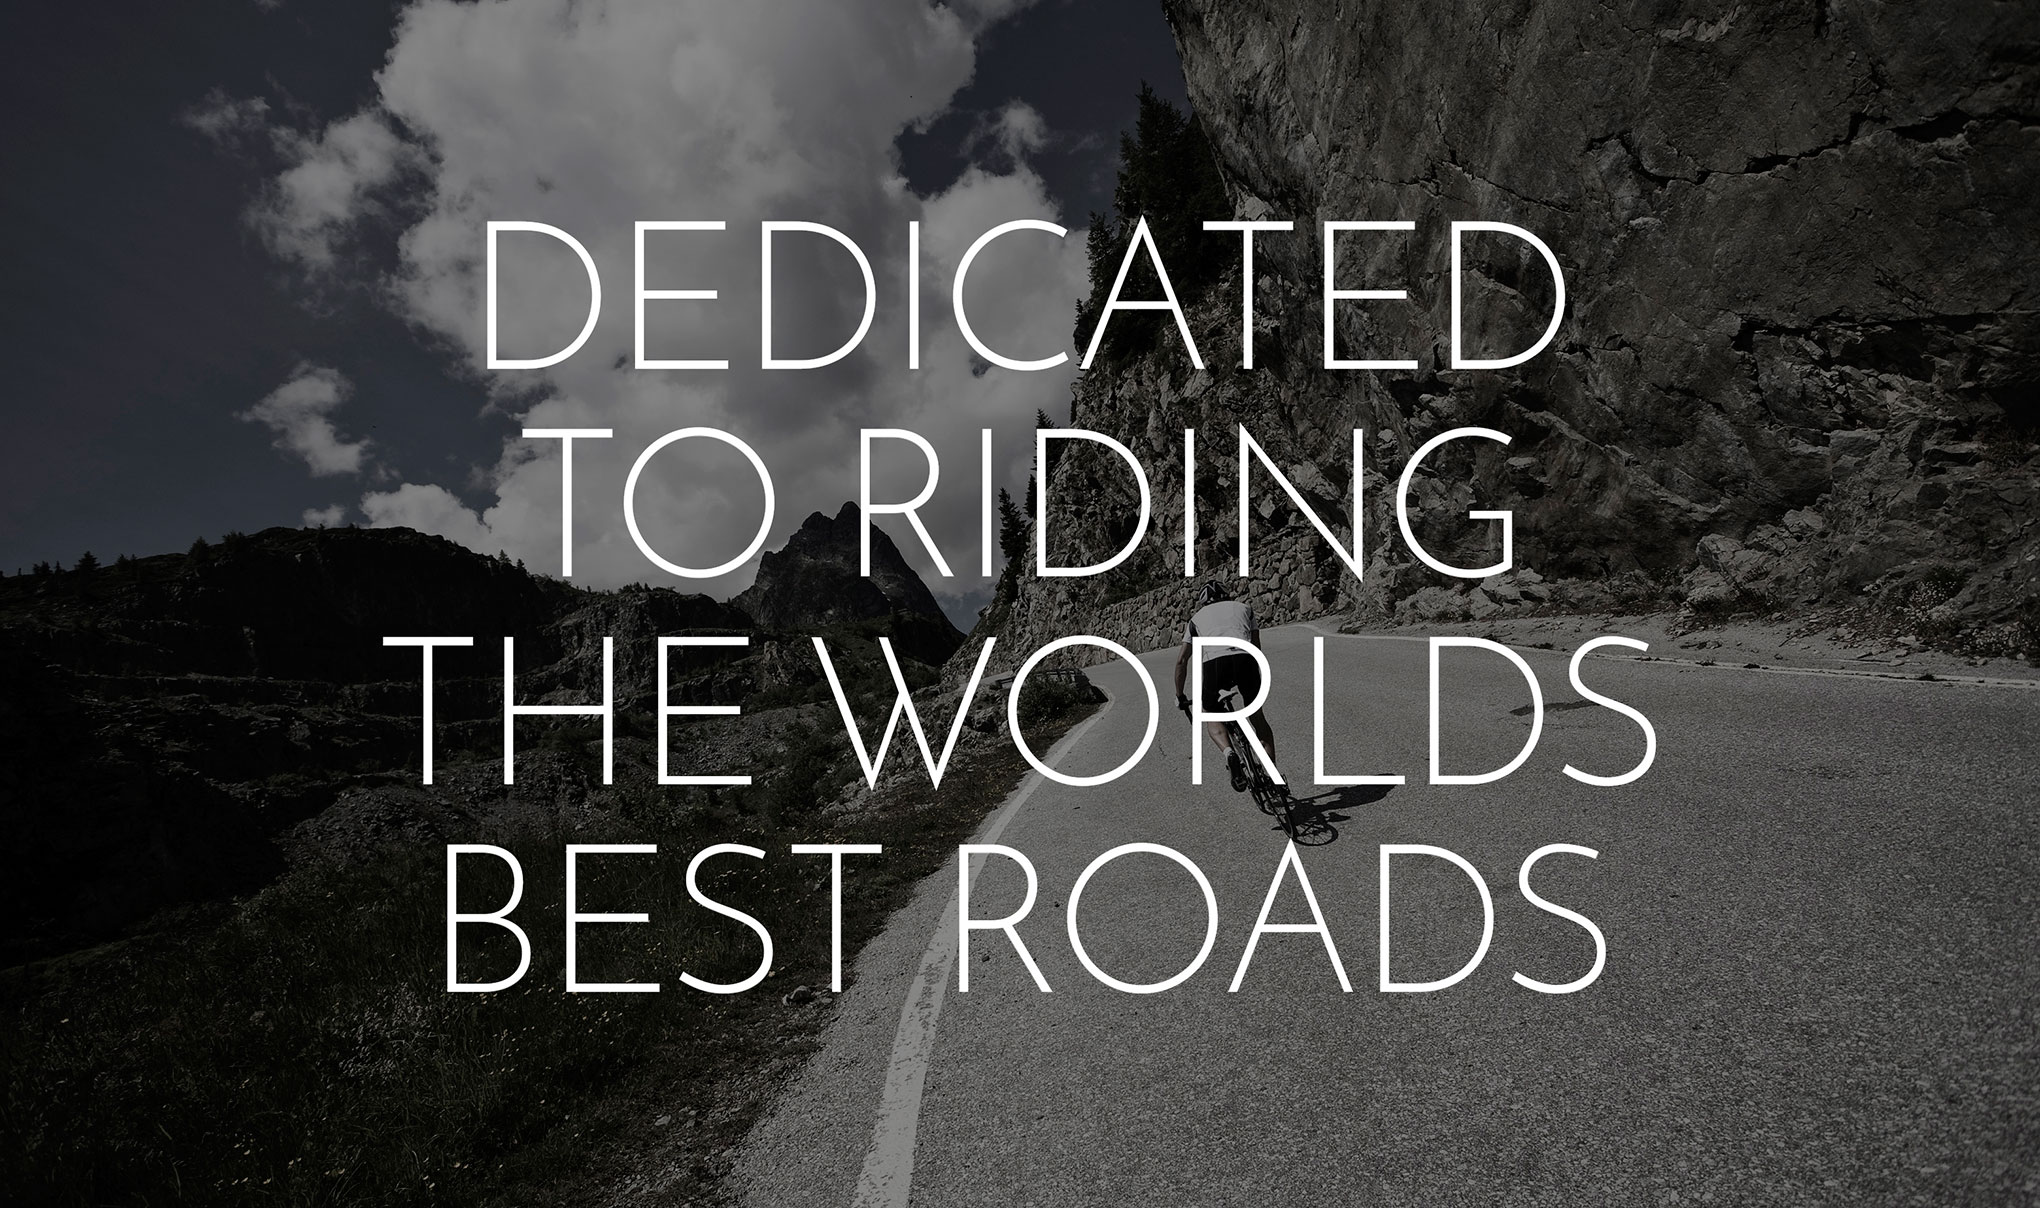 Image shows the text 'Dedicated to riding the worlds best roads' overlaying a cyclist on a road in the Alps.